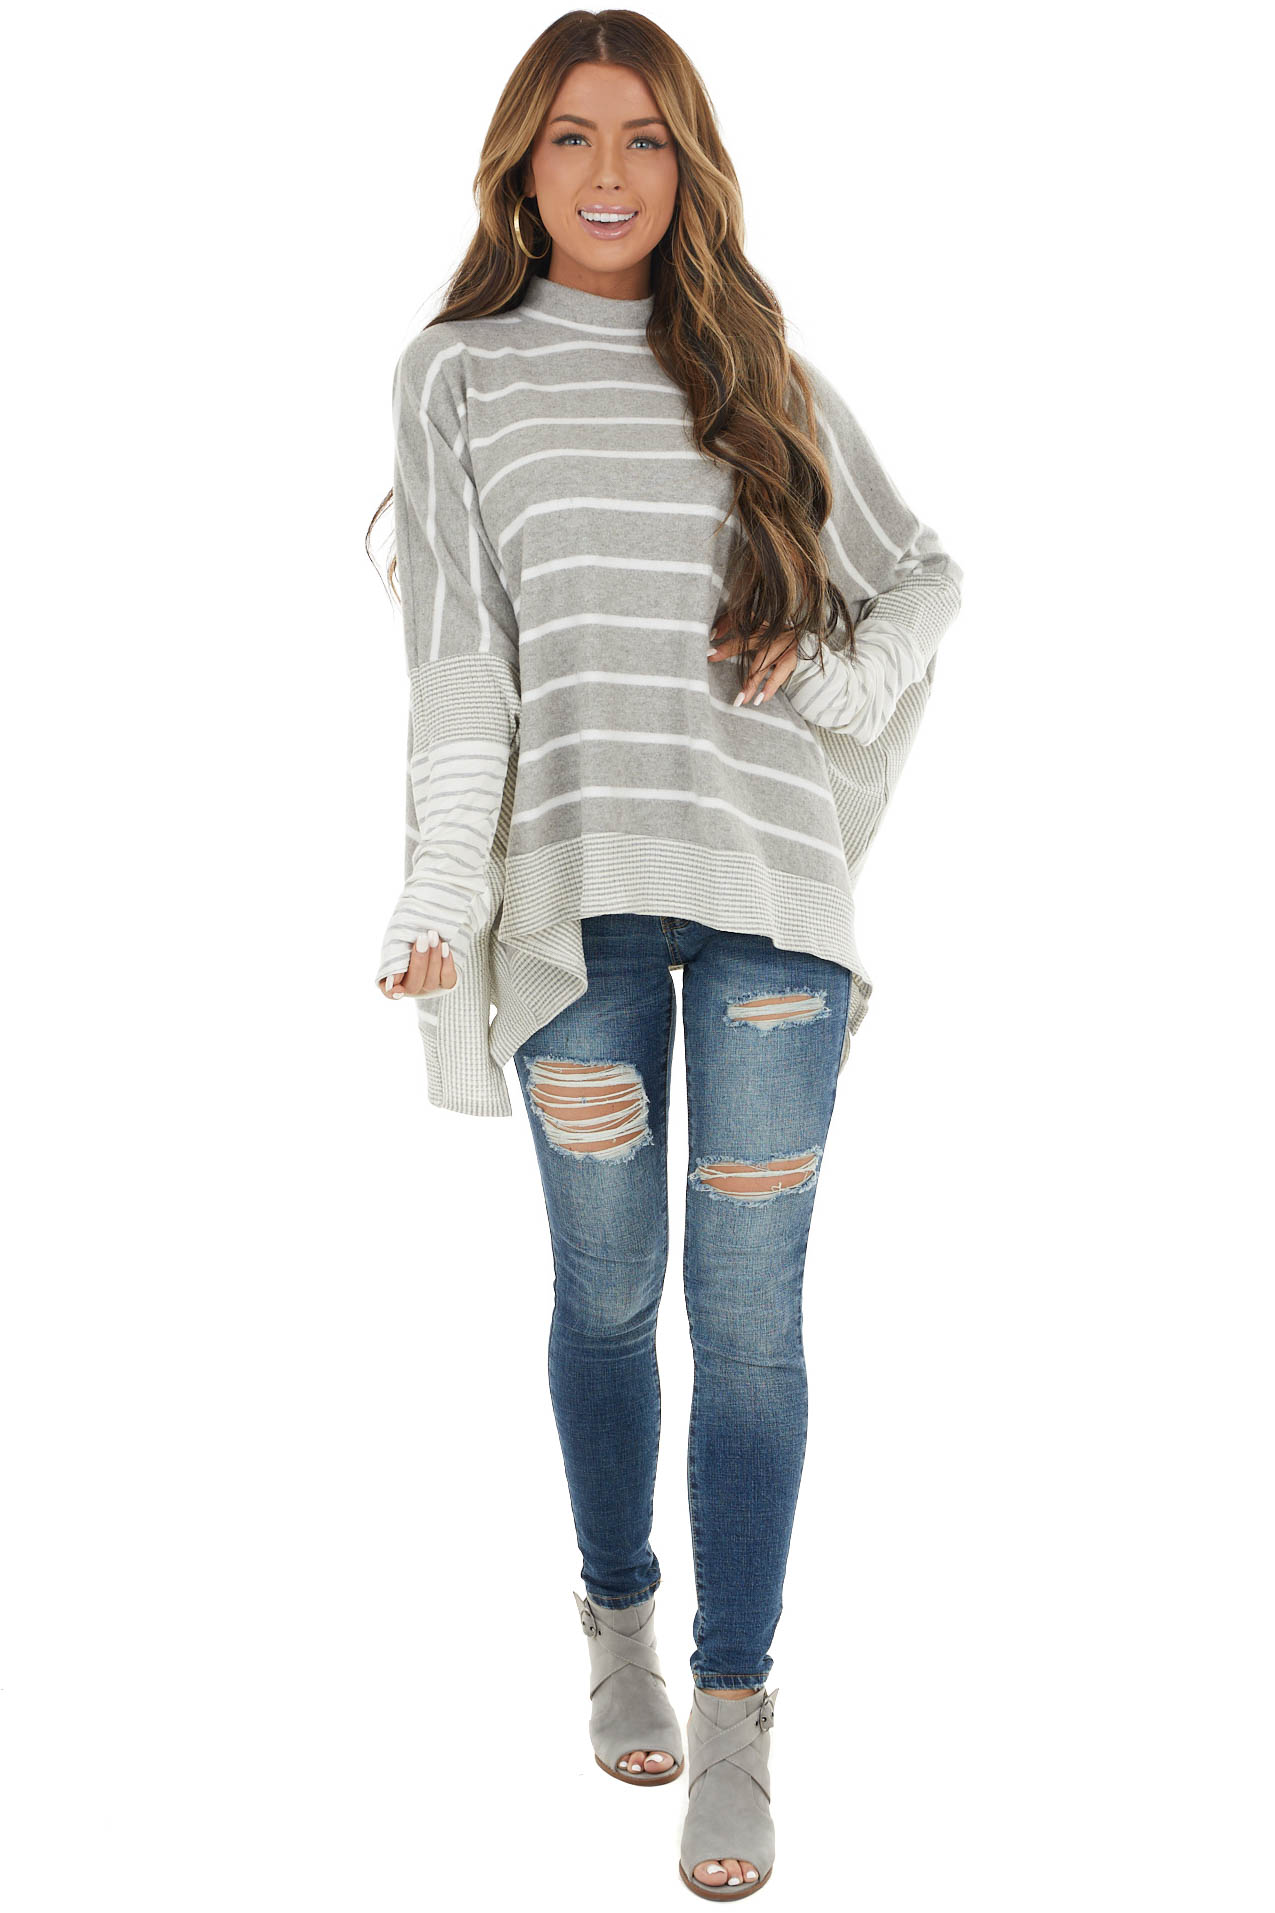 Heather Grey Striped Oversized Knit Top with High Neckline